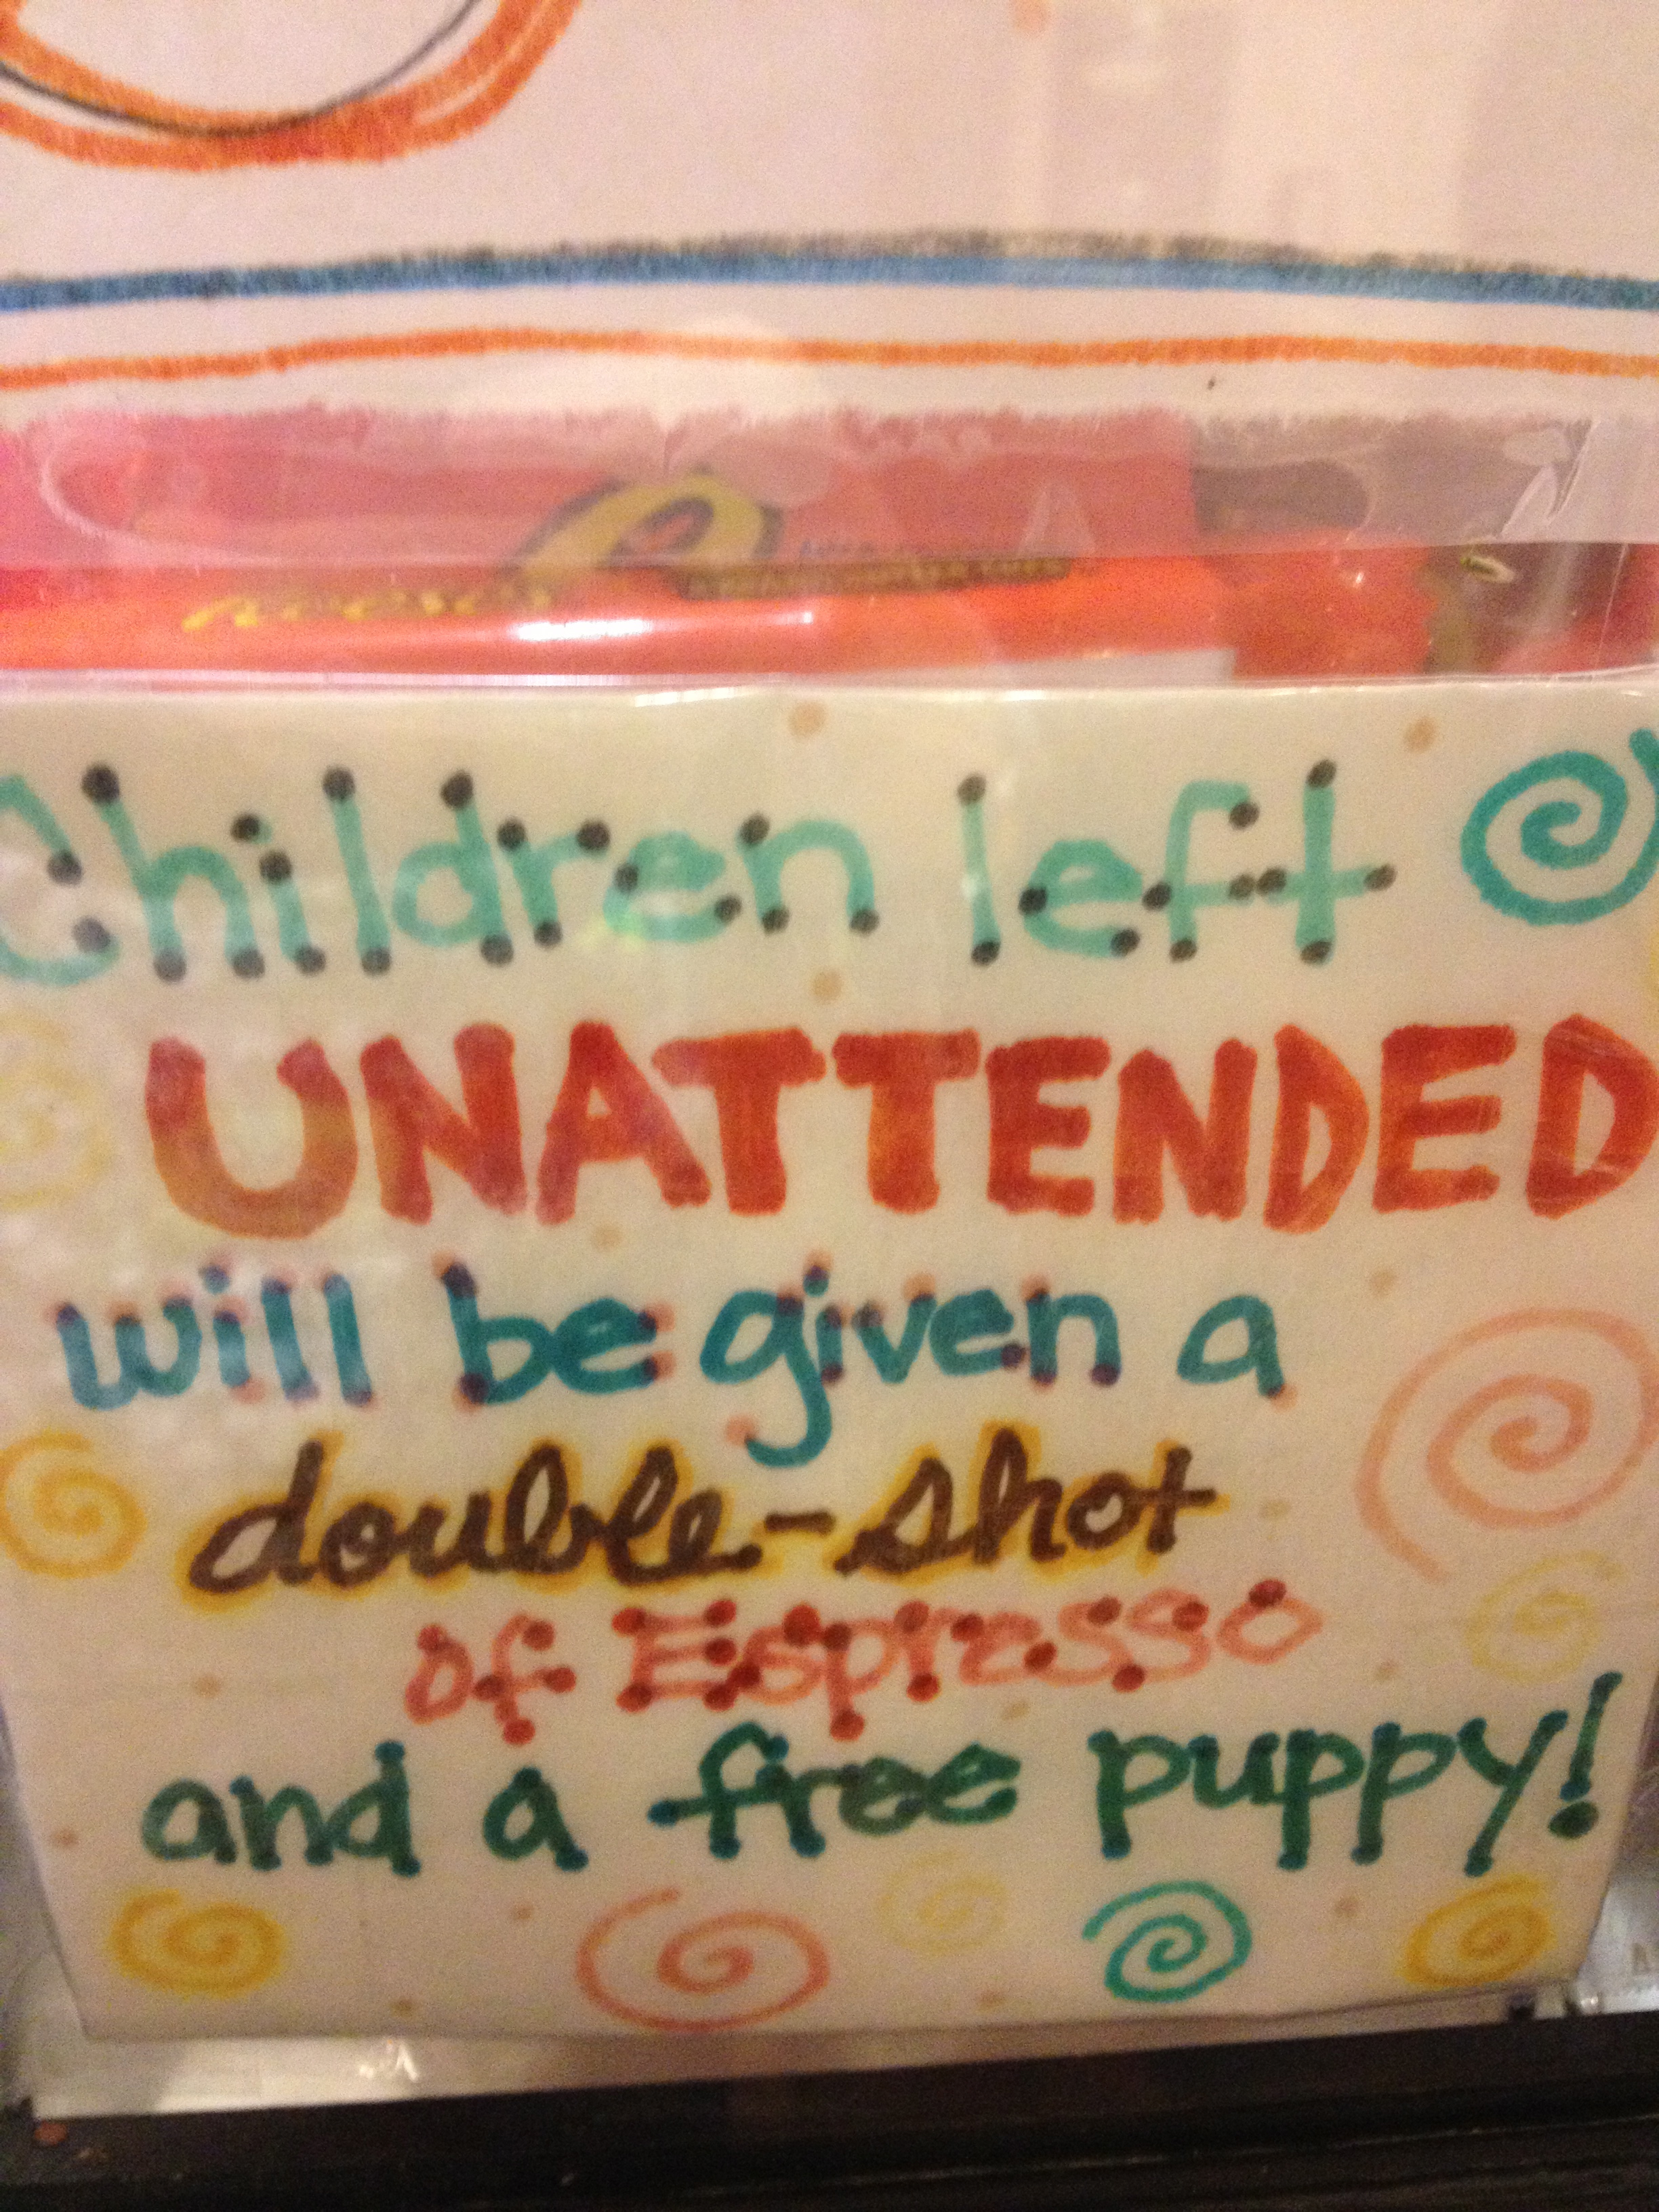 PS this sign was posted in the ice cream parlor. Interestingly the only other place on Earth I have seen this sign is at [a recent LAB Light], Stir It Up in St. Augustine!